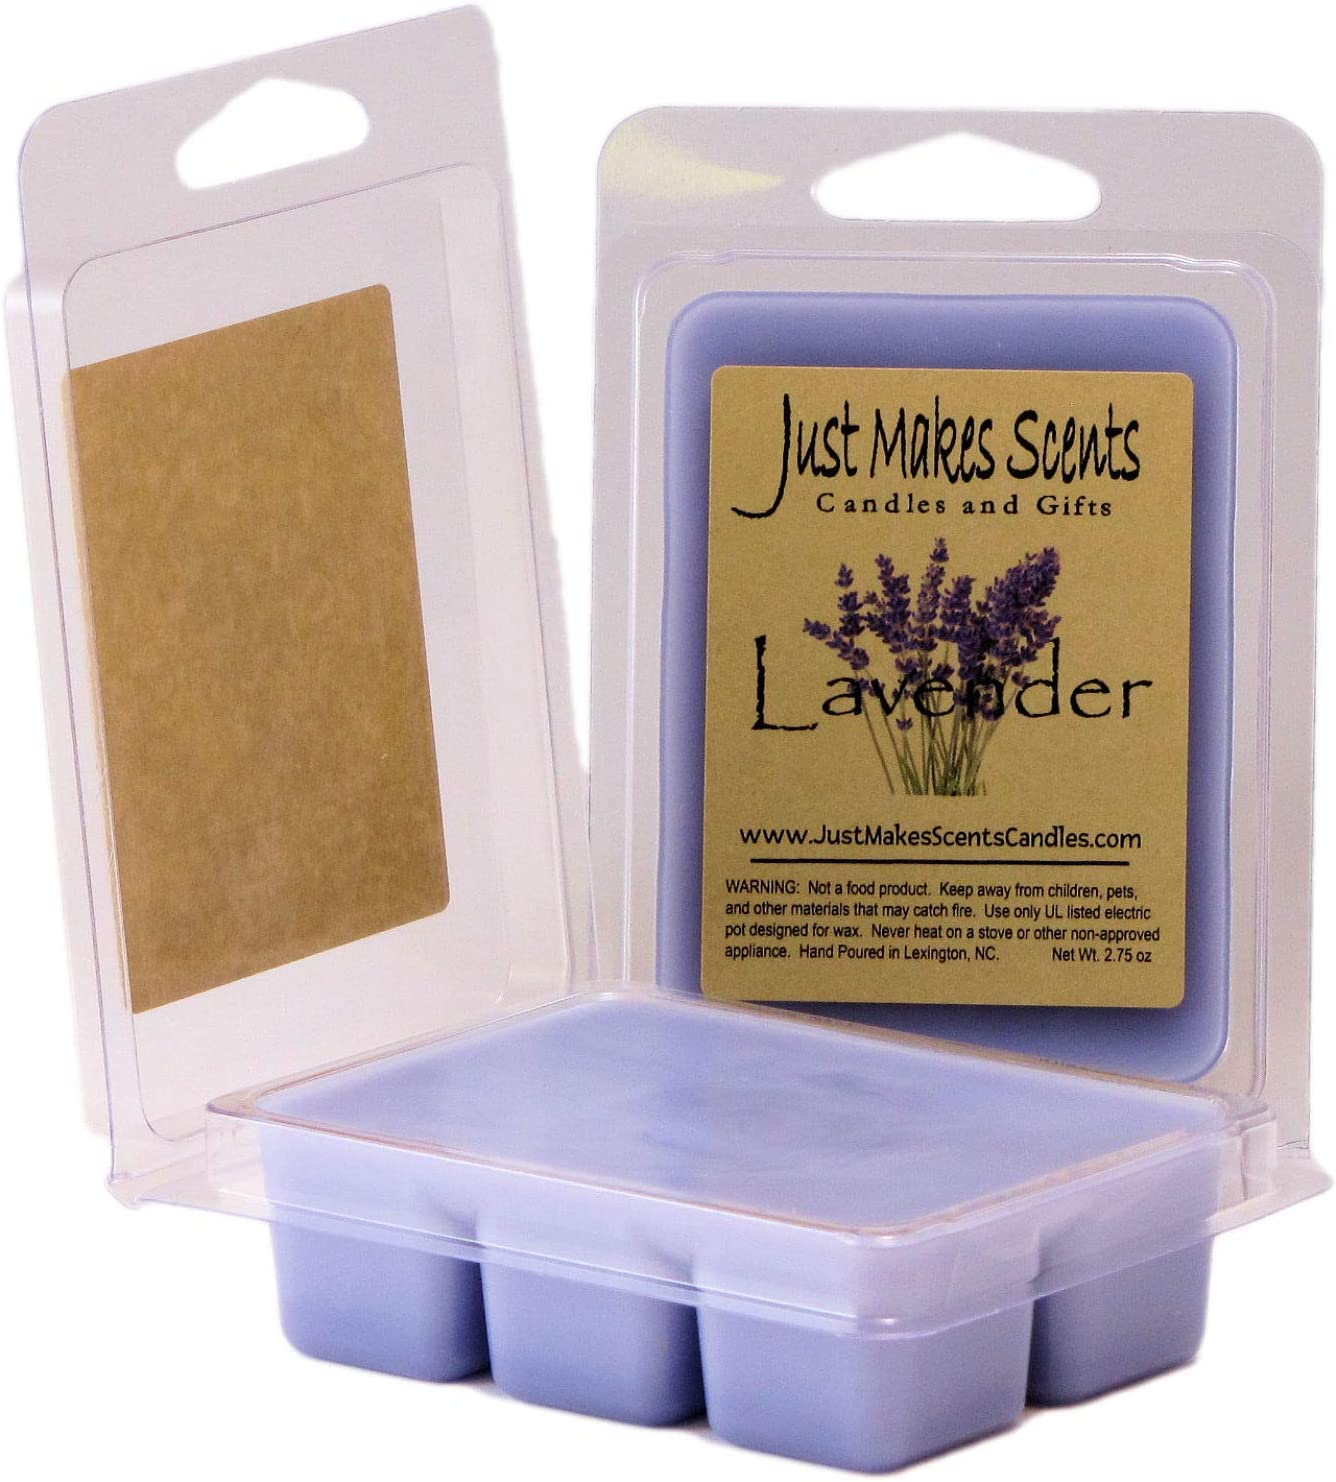 Just Makes Scents 2 Pack - Lavender Scented Wax Melts | Blended Soy Wax Cubes | Long Lasting Wax Bars Made Relaxing Lavender Fragrance